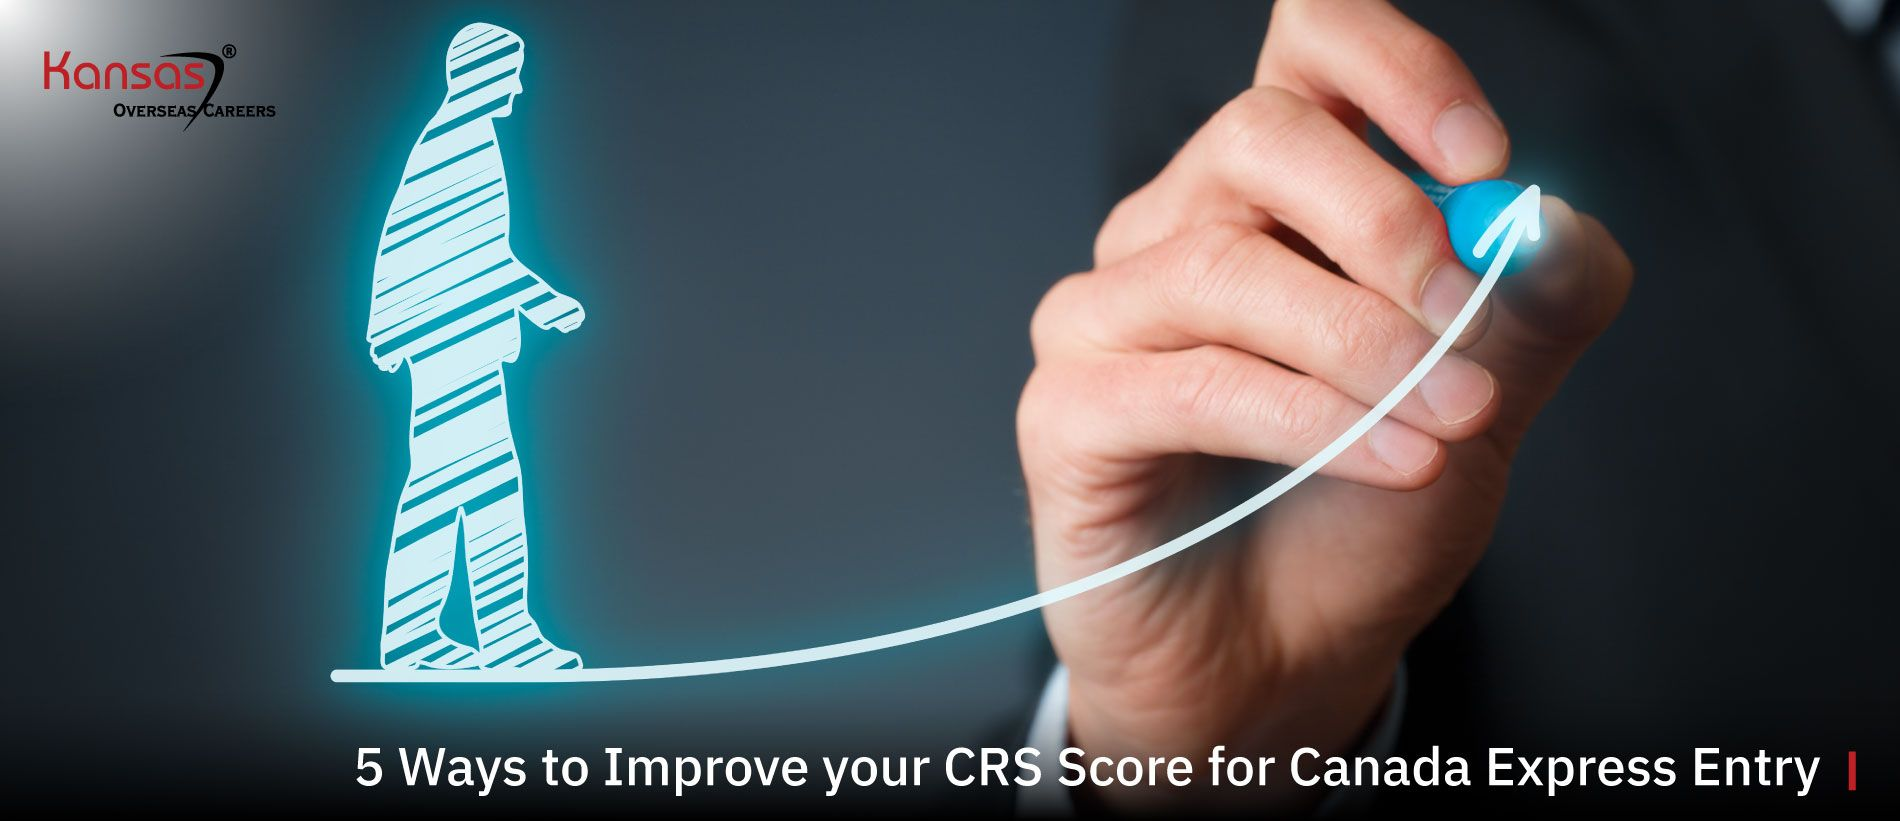 5-Ways-to-Improve-your-CRS-Score-for-Canada-Express-Entry-